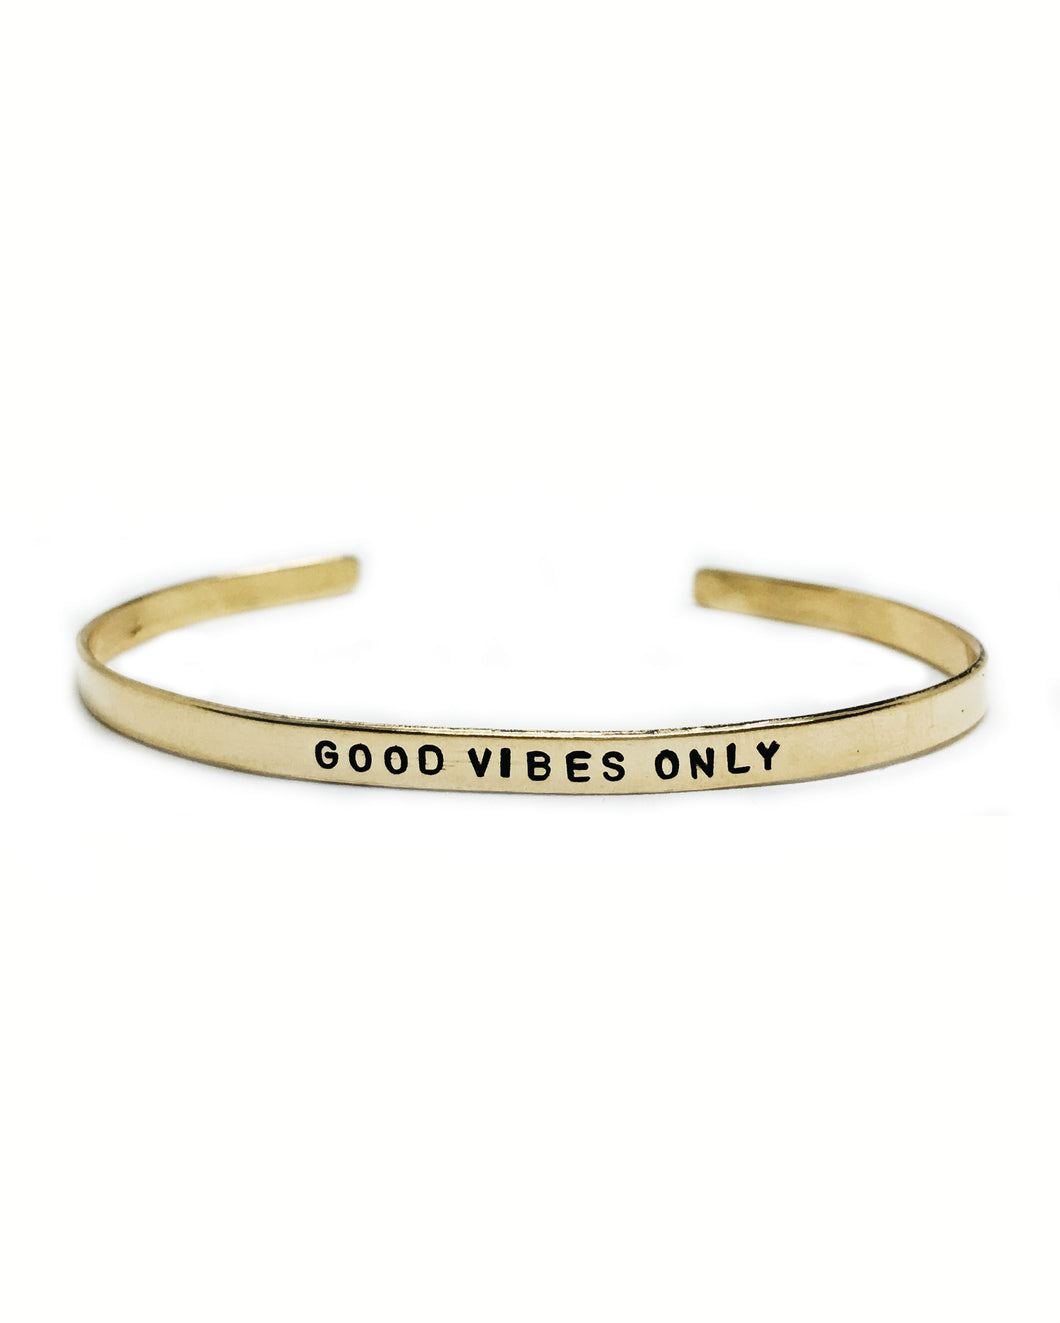 Good Vibes Only Handstamped Skinny Cuff